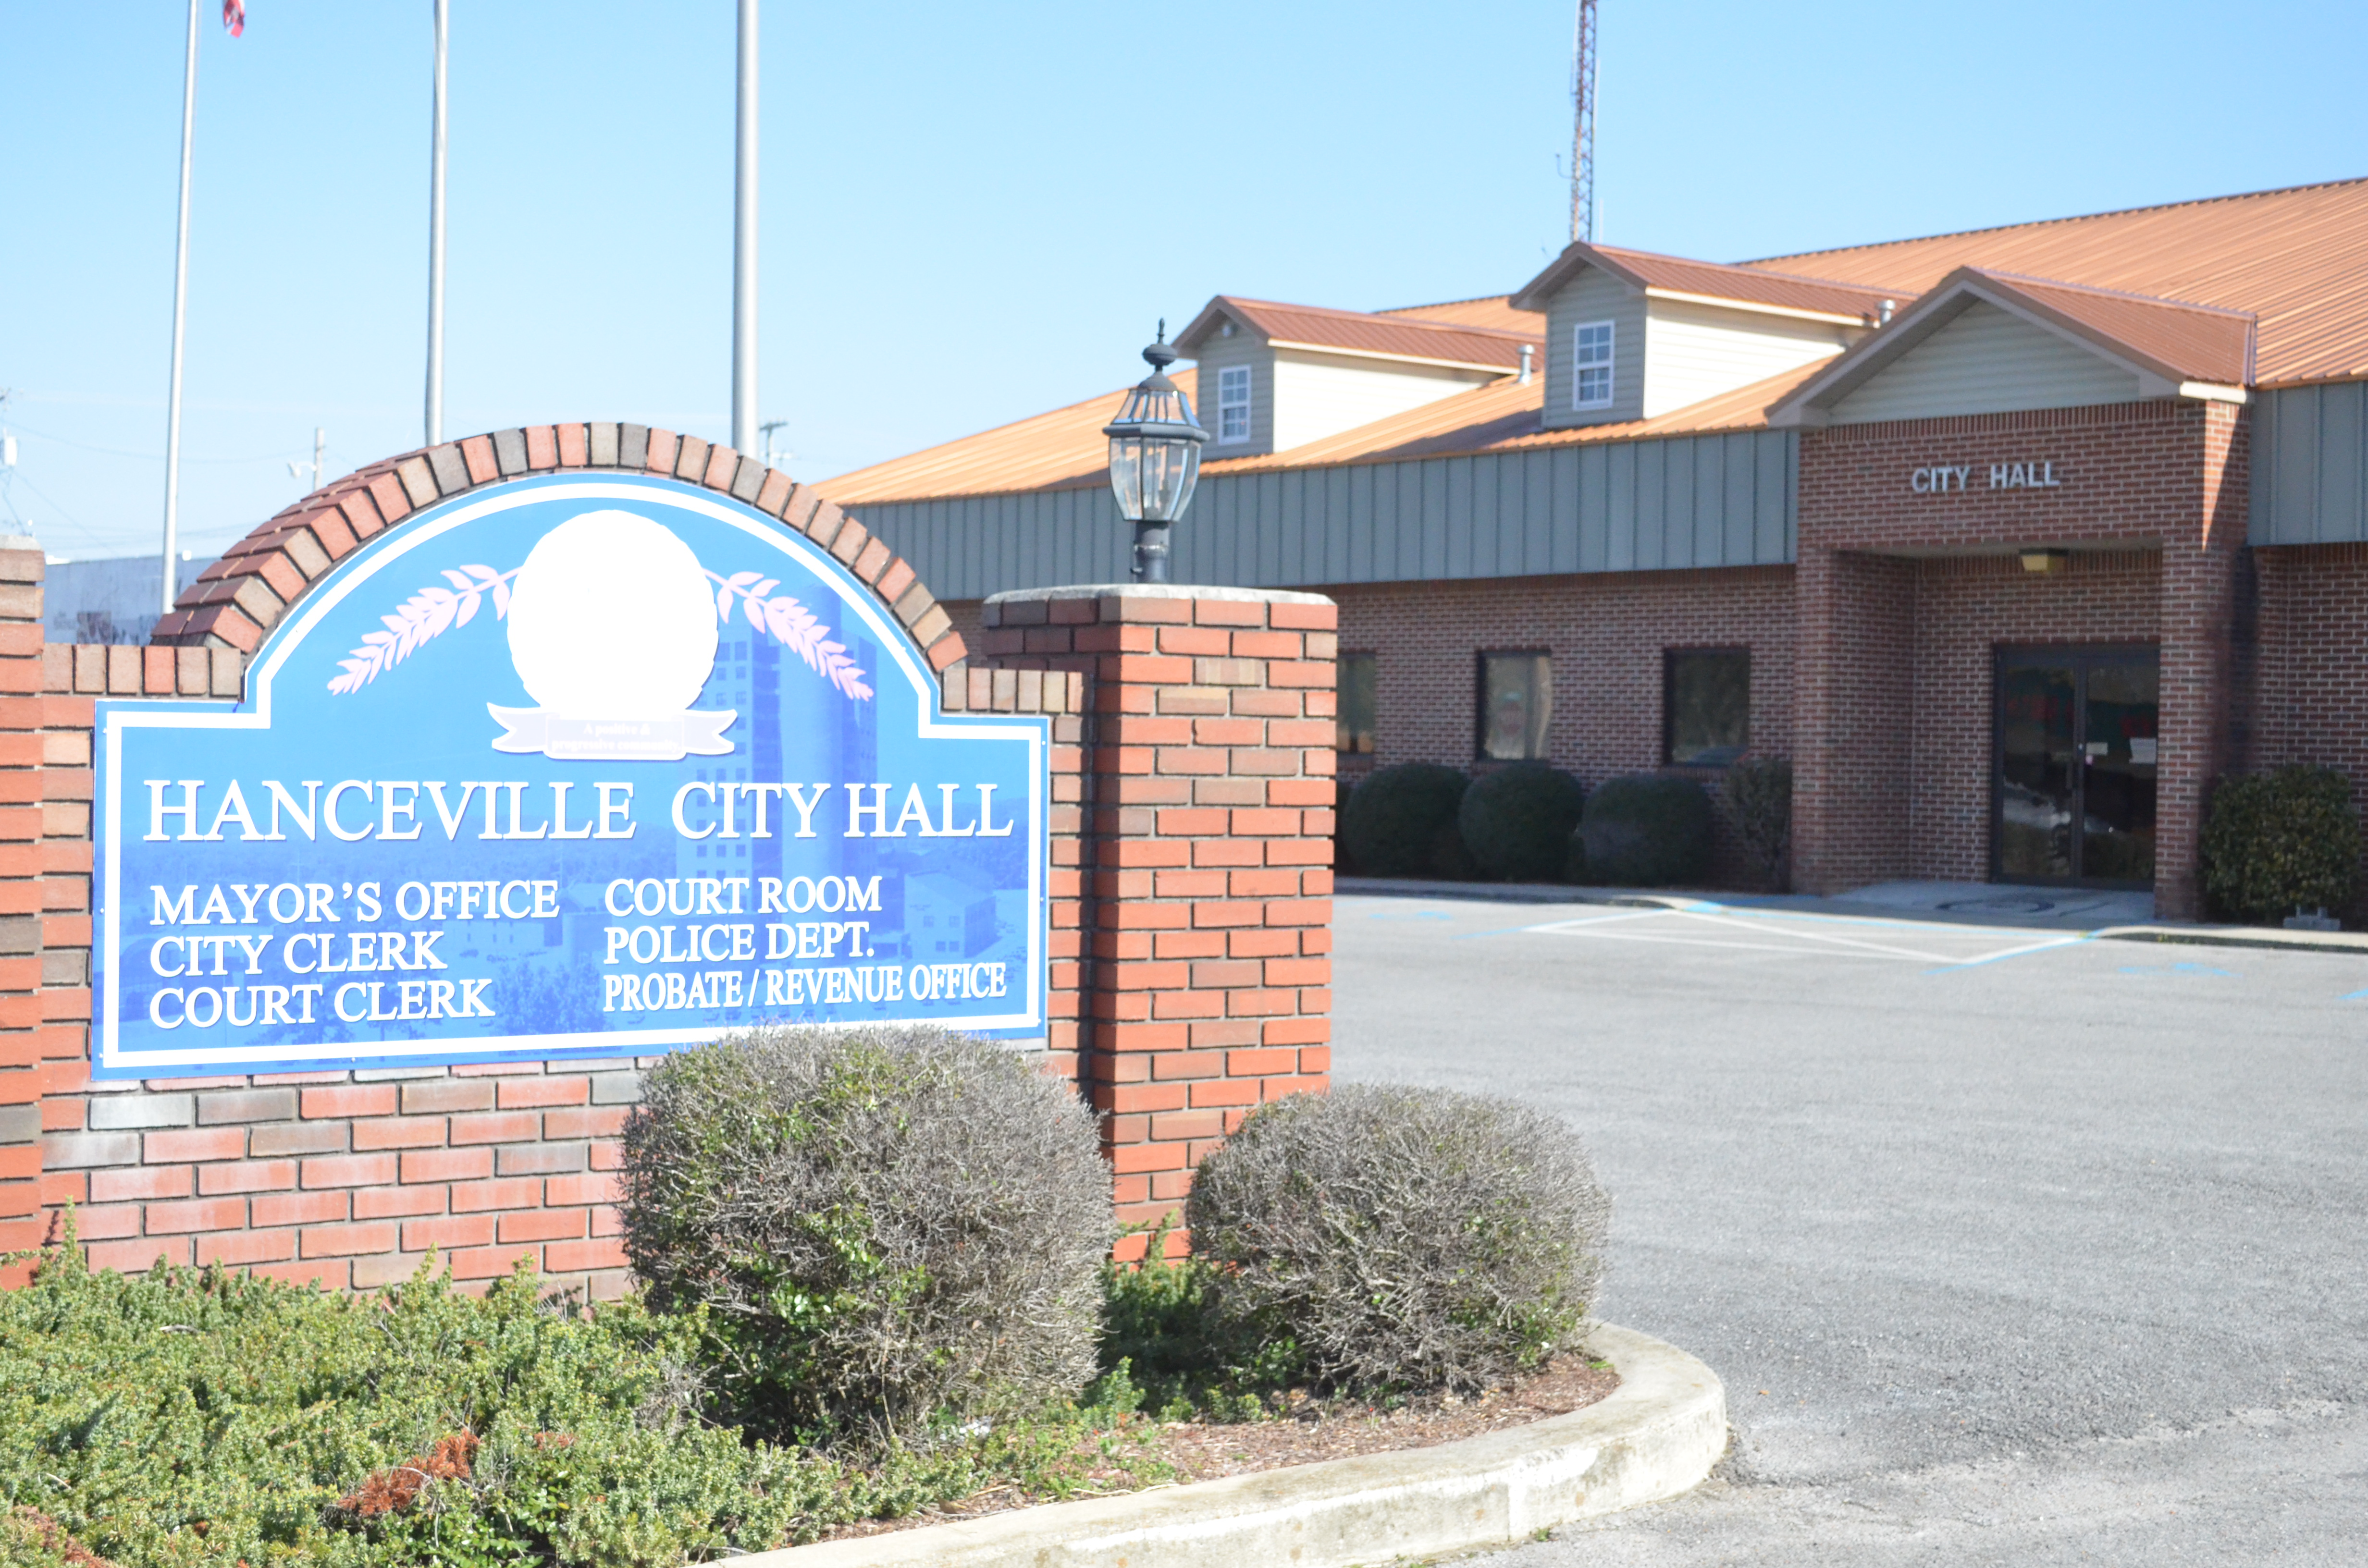 hanceville_city_hall.jpg